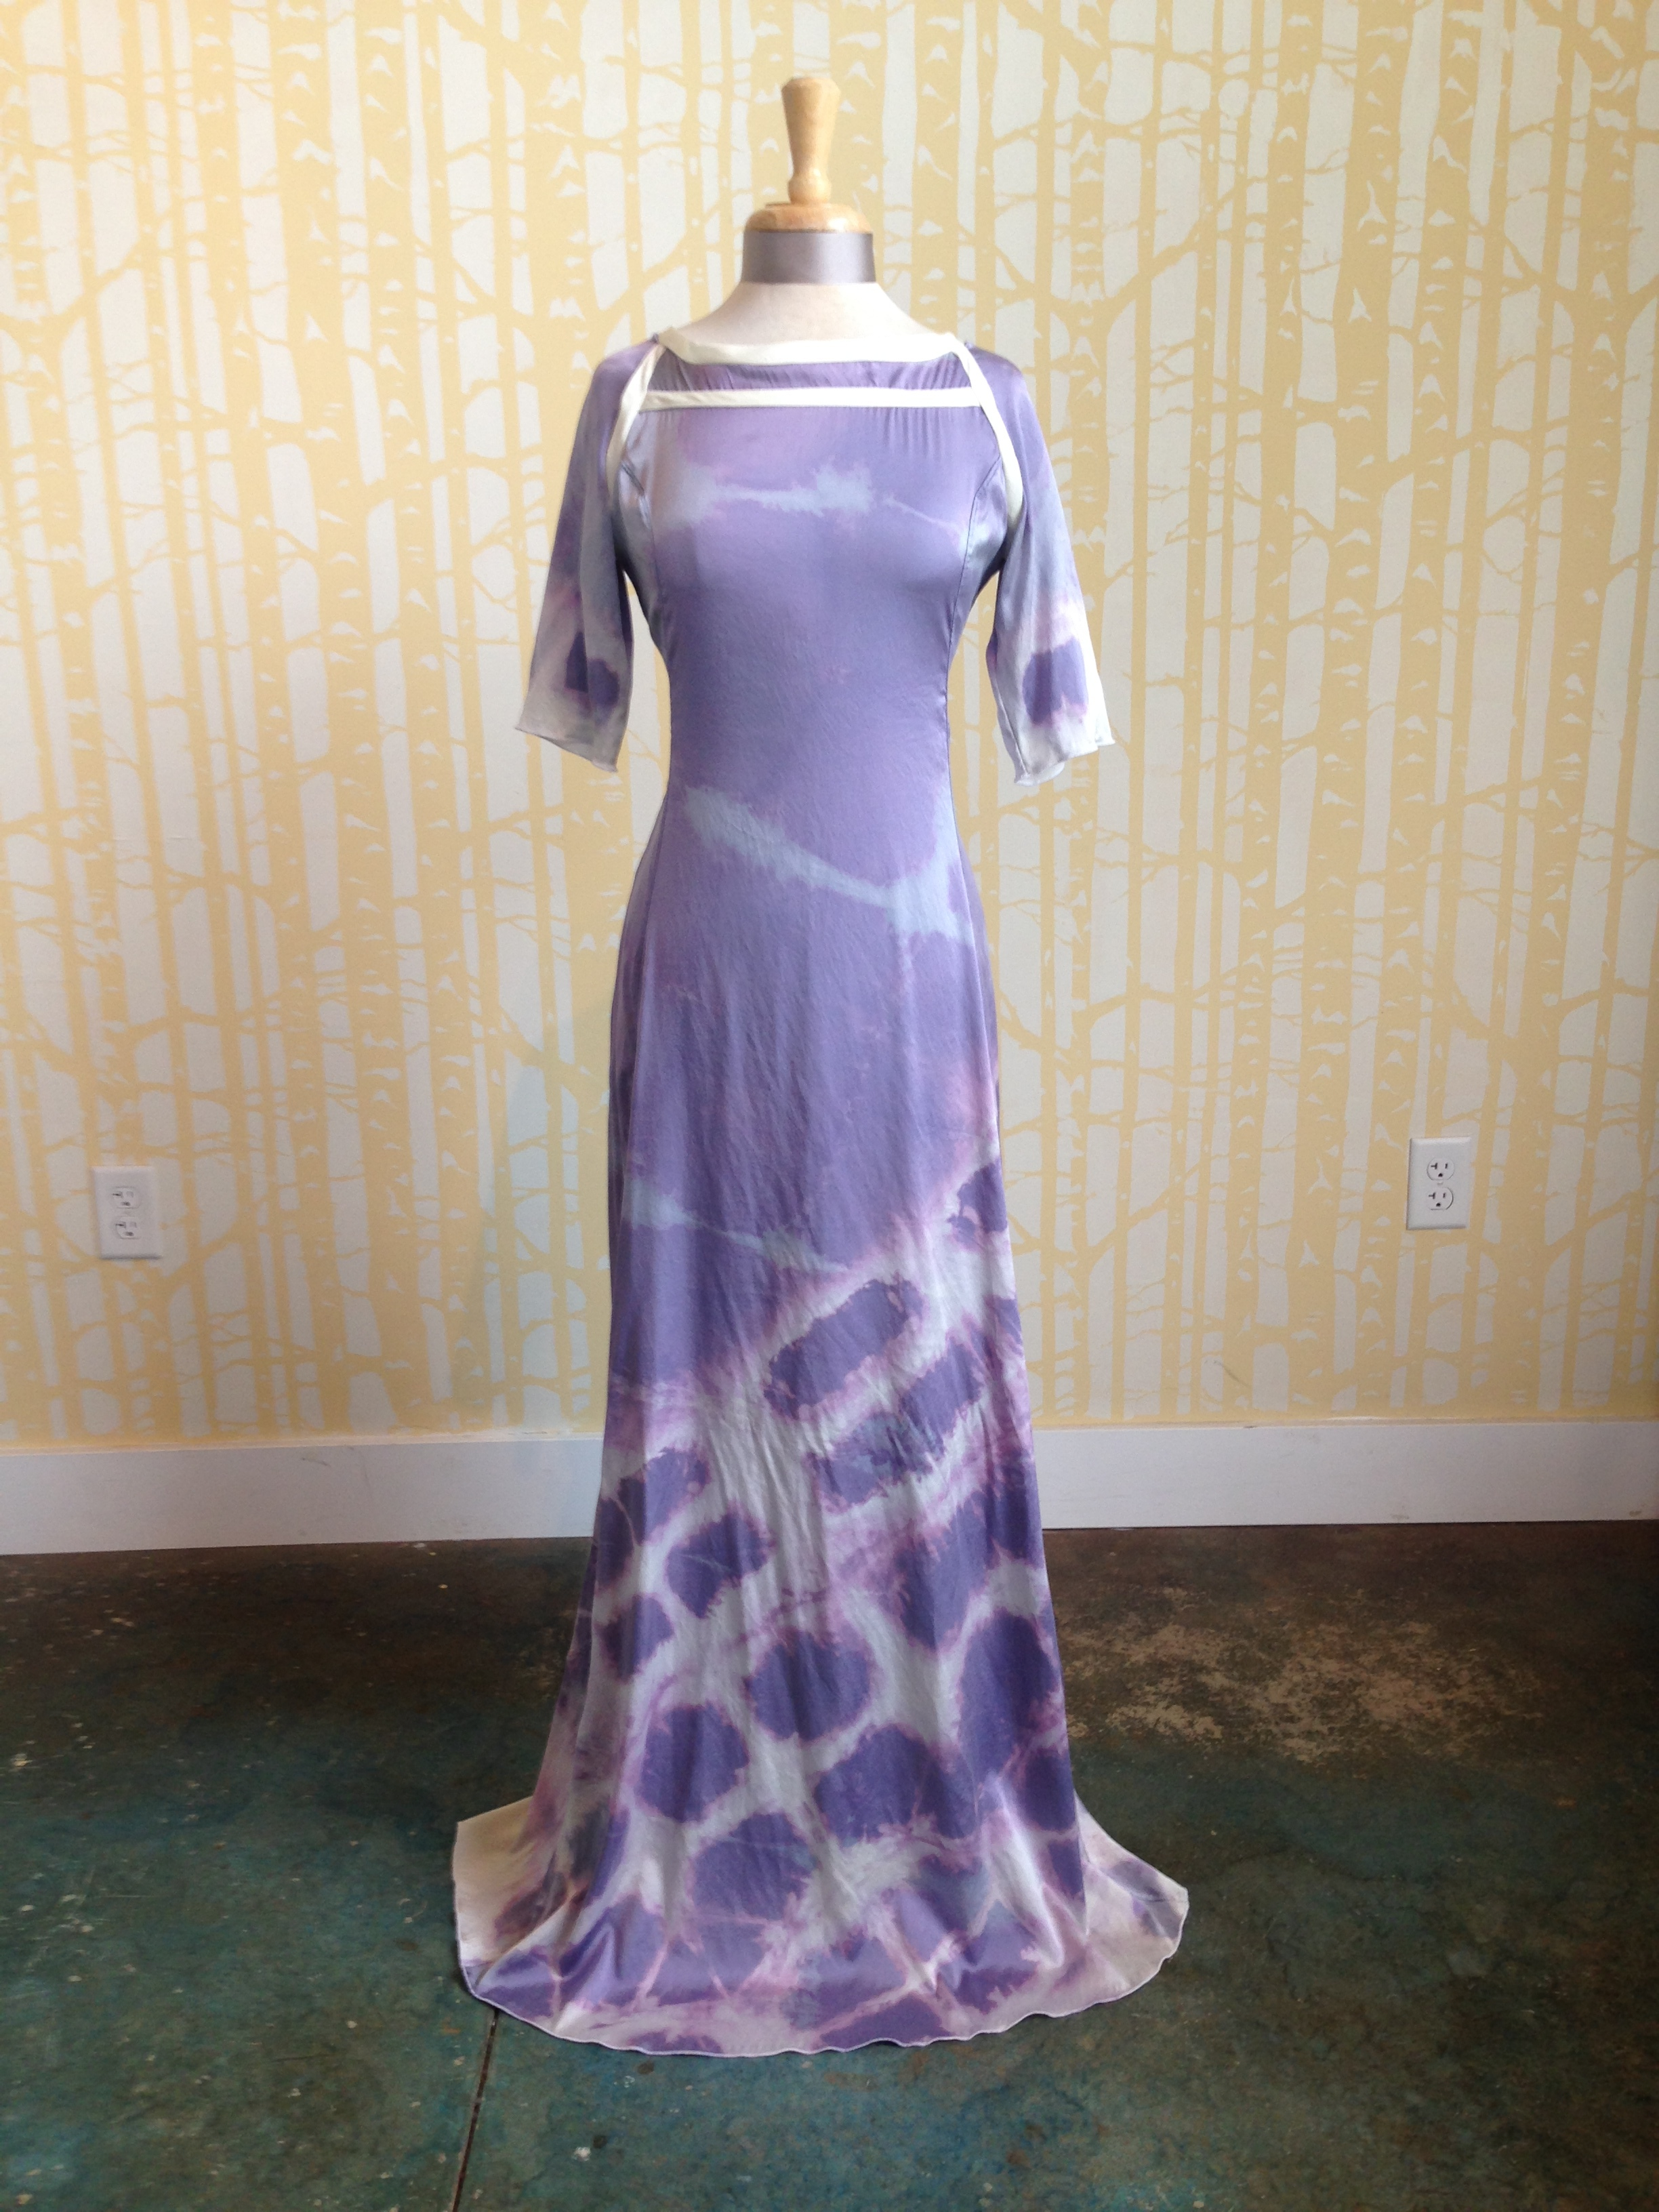 custom shibori dyed silk dress, 2015.